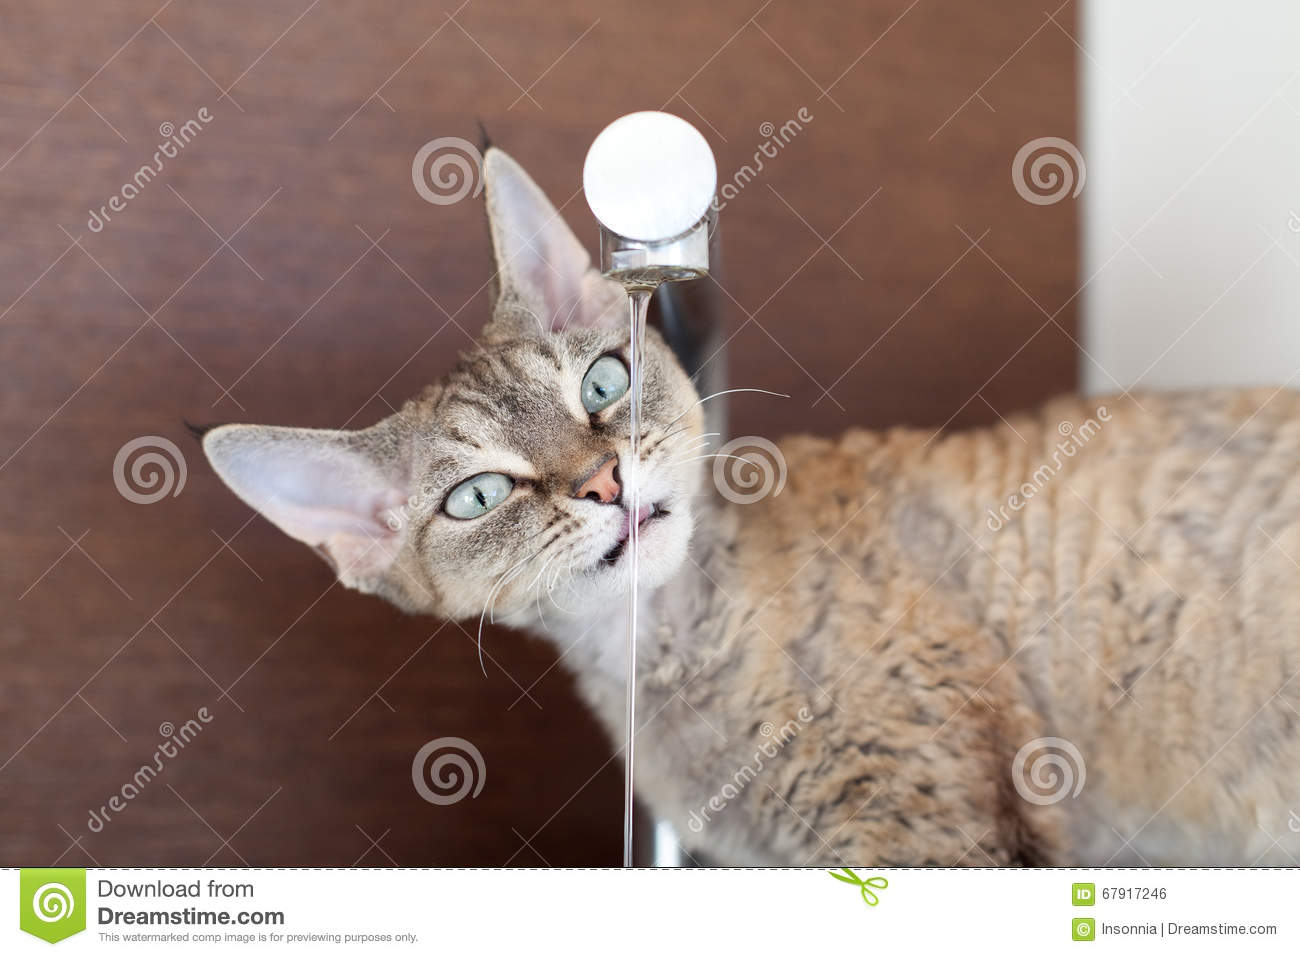 Cat Drinking Fresh Water From The Faucet Stock Photo - Image of ...